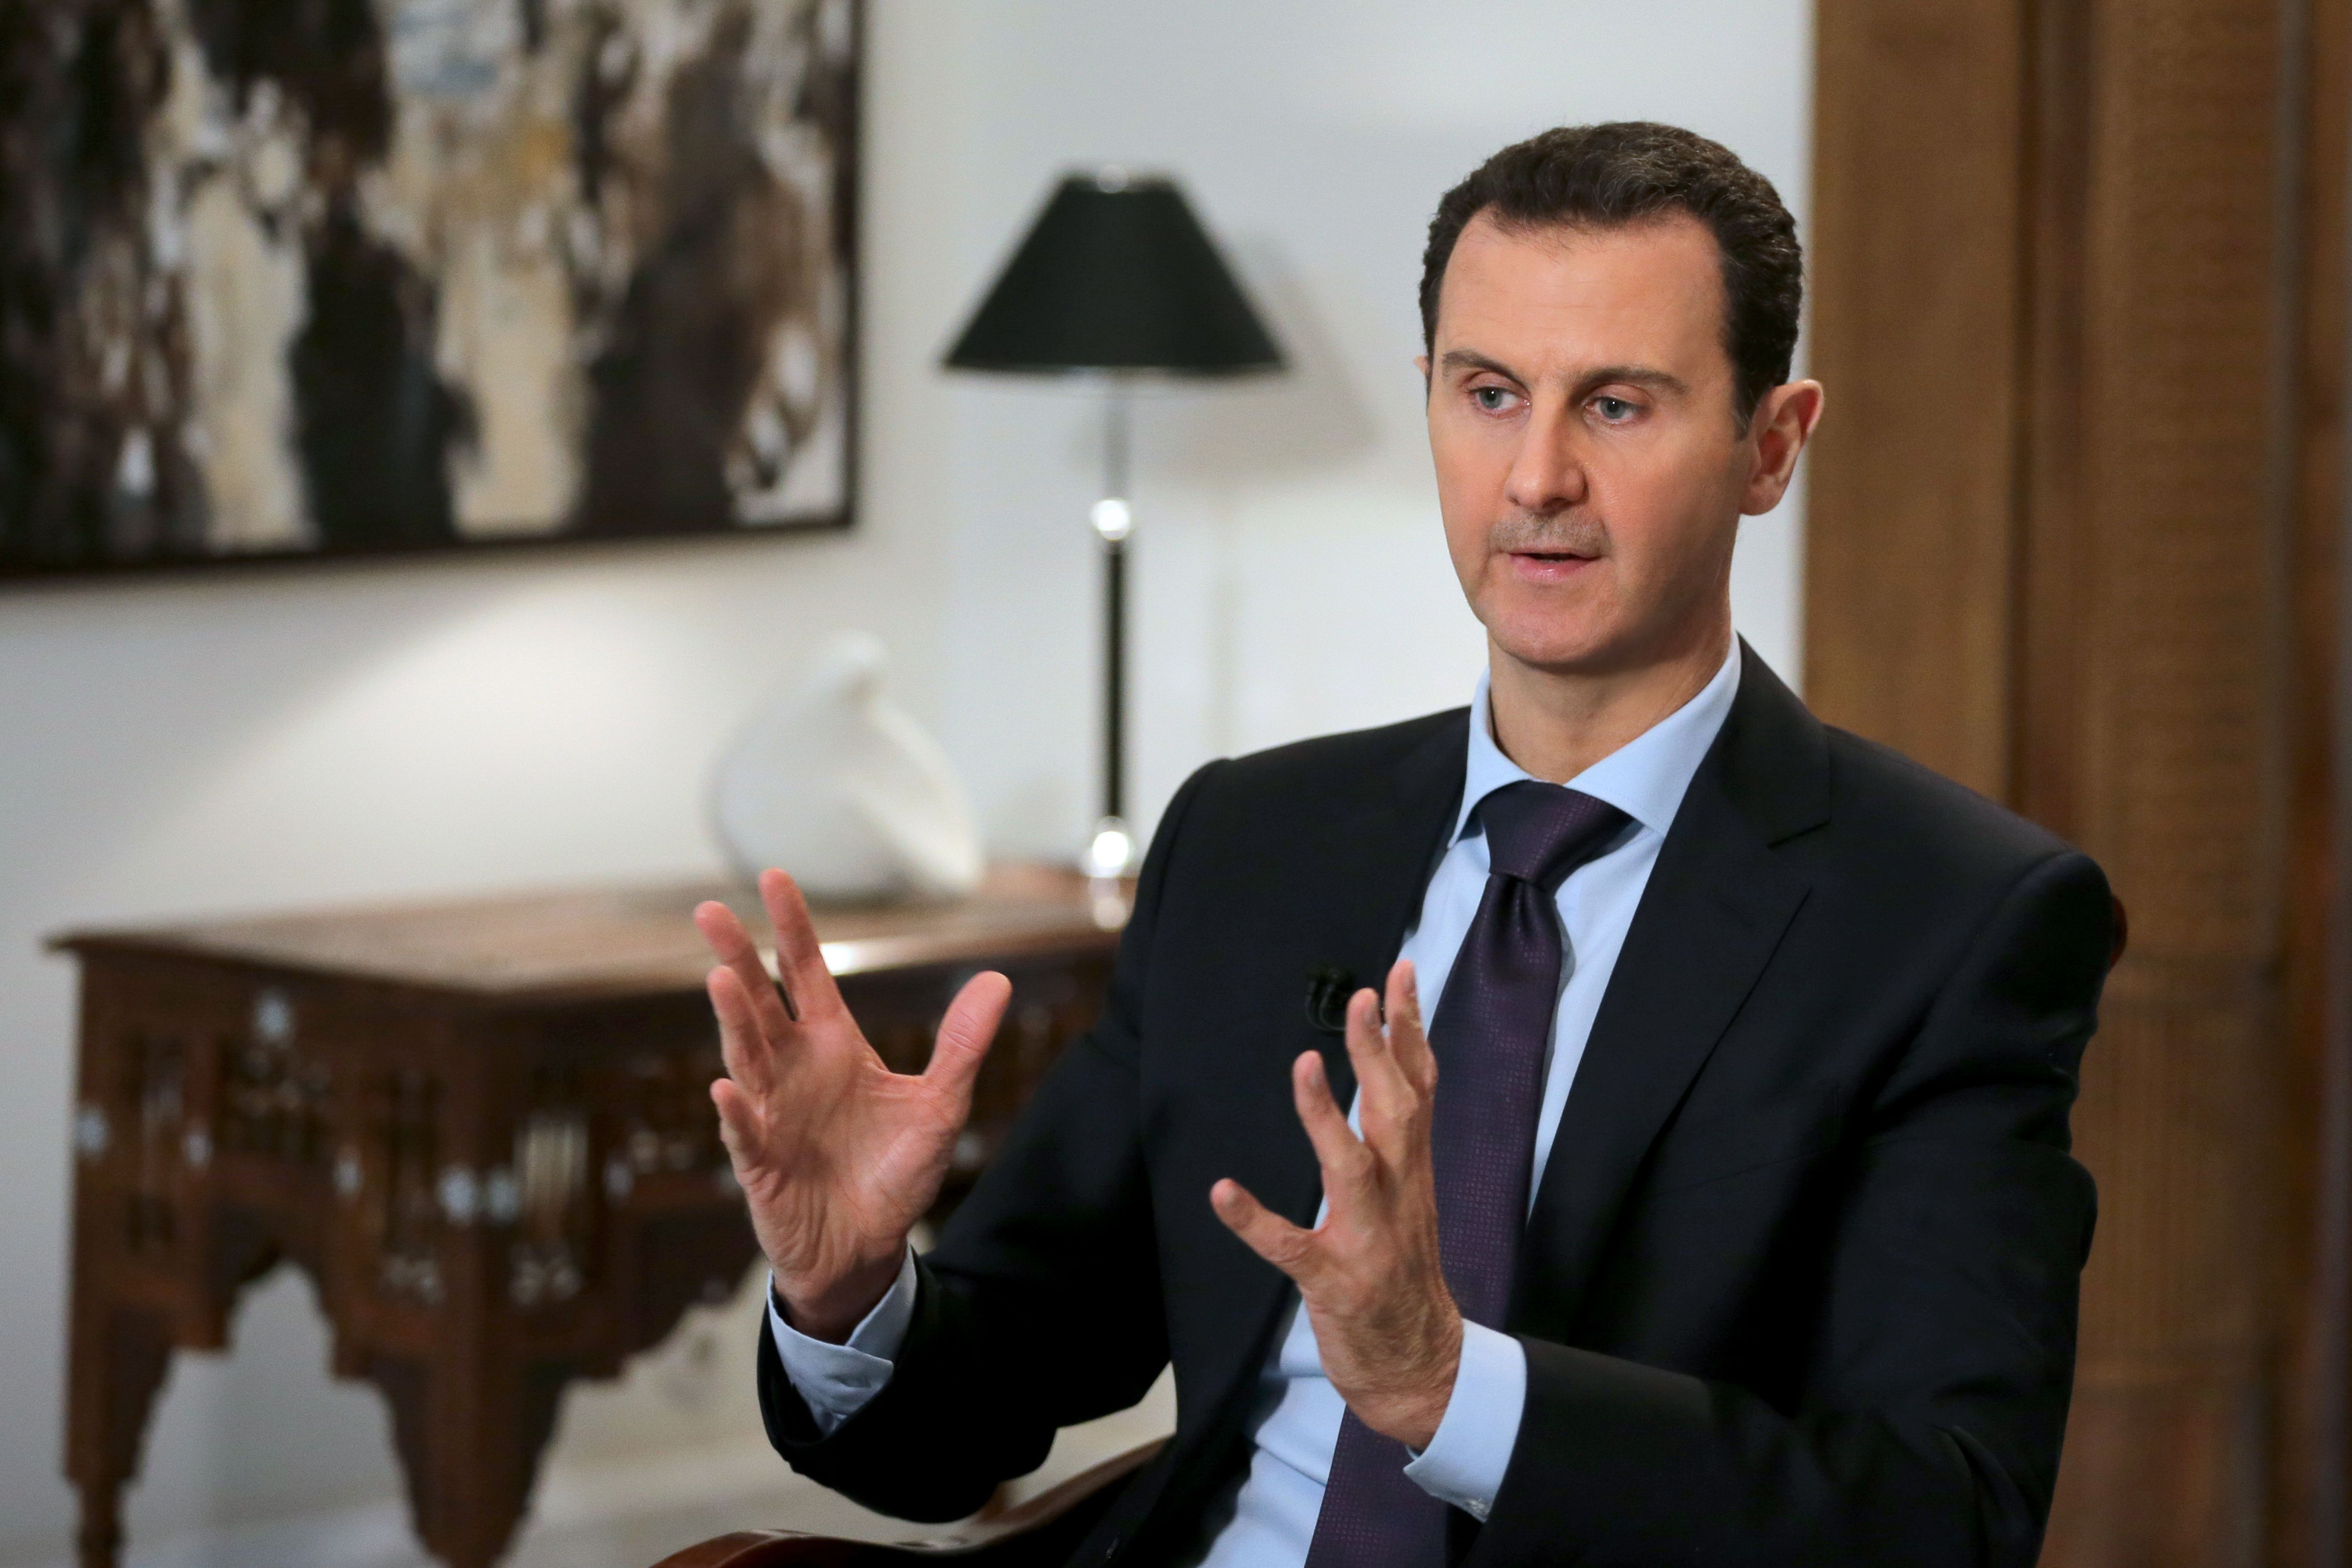 Syrian President Bashar al-Assad gestures during an interview in the capital Damascus on February 11, 2016.